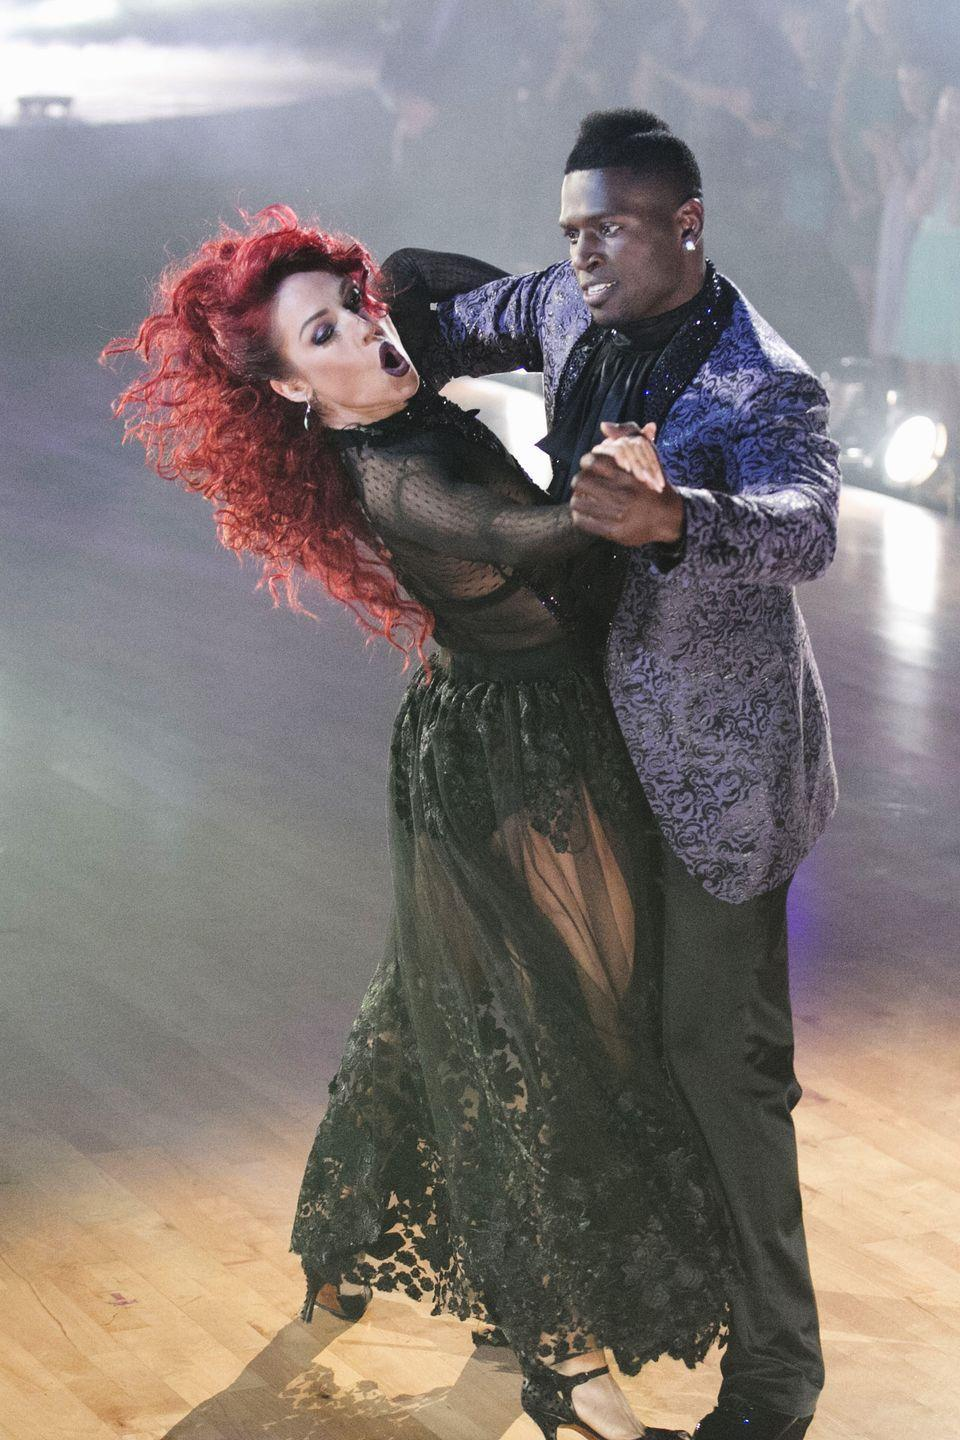 """<p>During a particularly intense tango with partner Antonio Brown, Sharna's black bustier began to slip down without her noticing. To her dismay, Tom Bergeron alerted her attention to it after they finished and the dancer laughed it off—<a href=""""https://www.inquisitr.com/3060615/sharna-burgess-suffers-nip-slip-and-two-other-wardrobe-malfunctions-on-dancing-with-the-stars/"""" rel=""""nofollow noopener"""" target=""""_blank"""" data-ylk=""""slk:although she later revealed"""" class=""""link rapid-noclick-resp"""">although she later revealed</a> it was one of her more embarrassing moments on the show. </p>"""